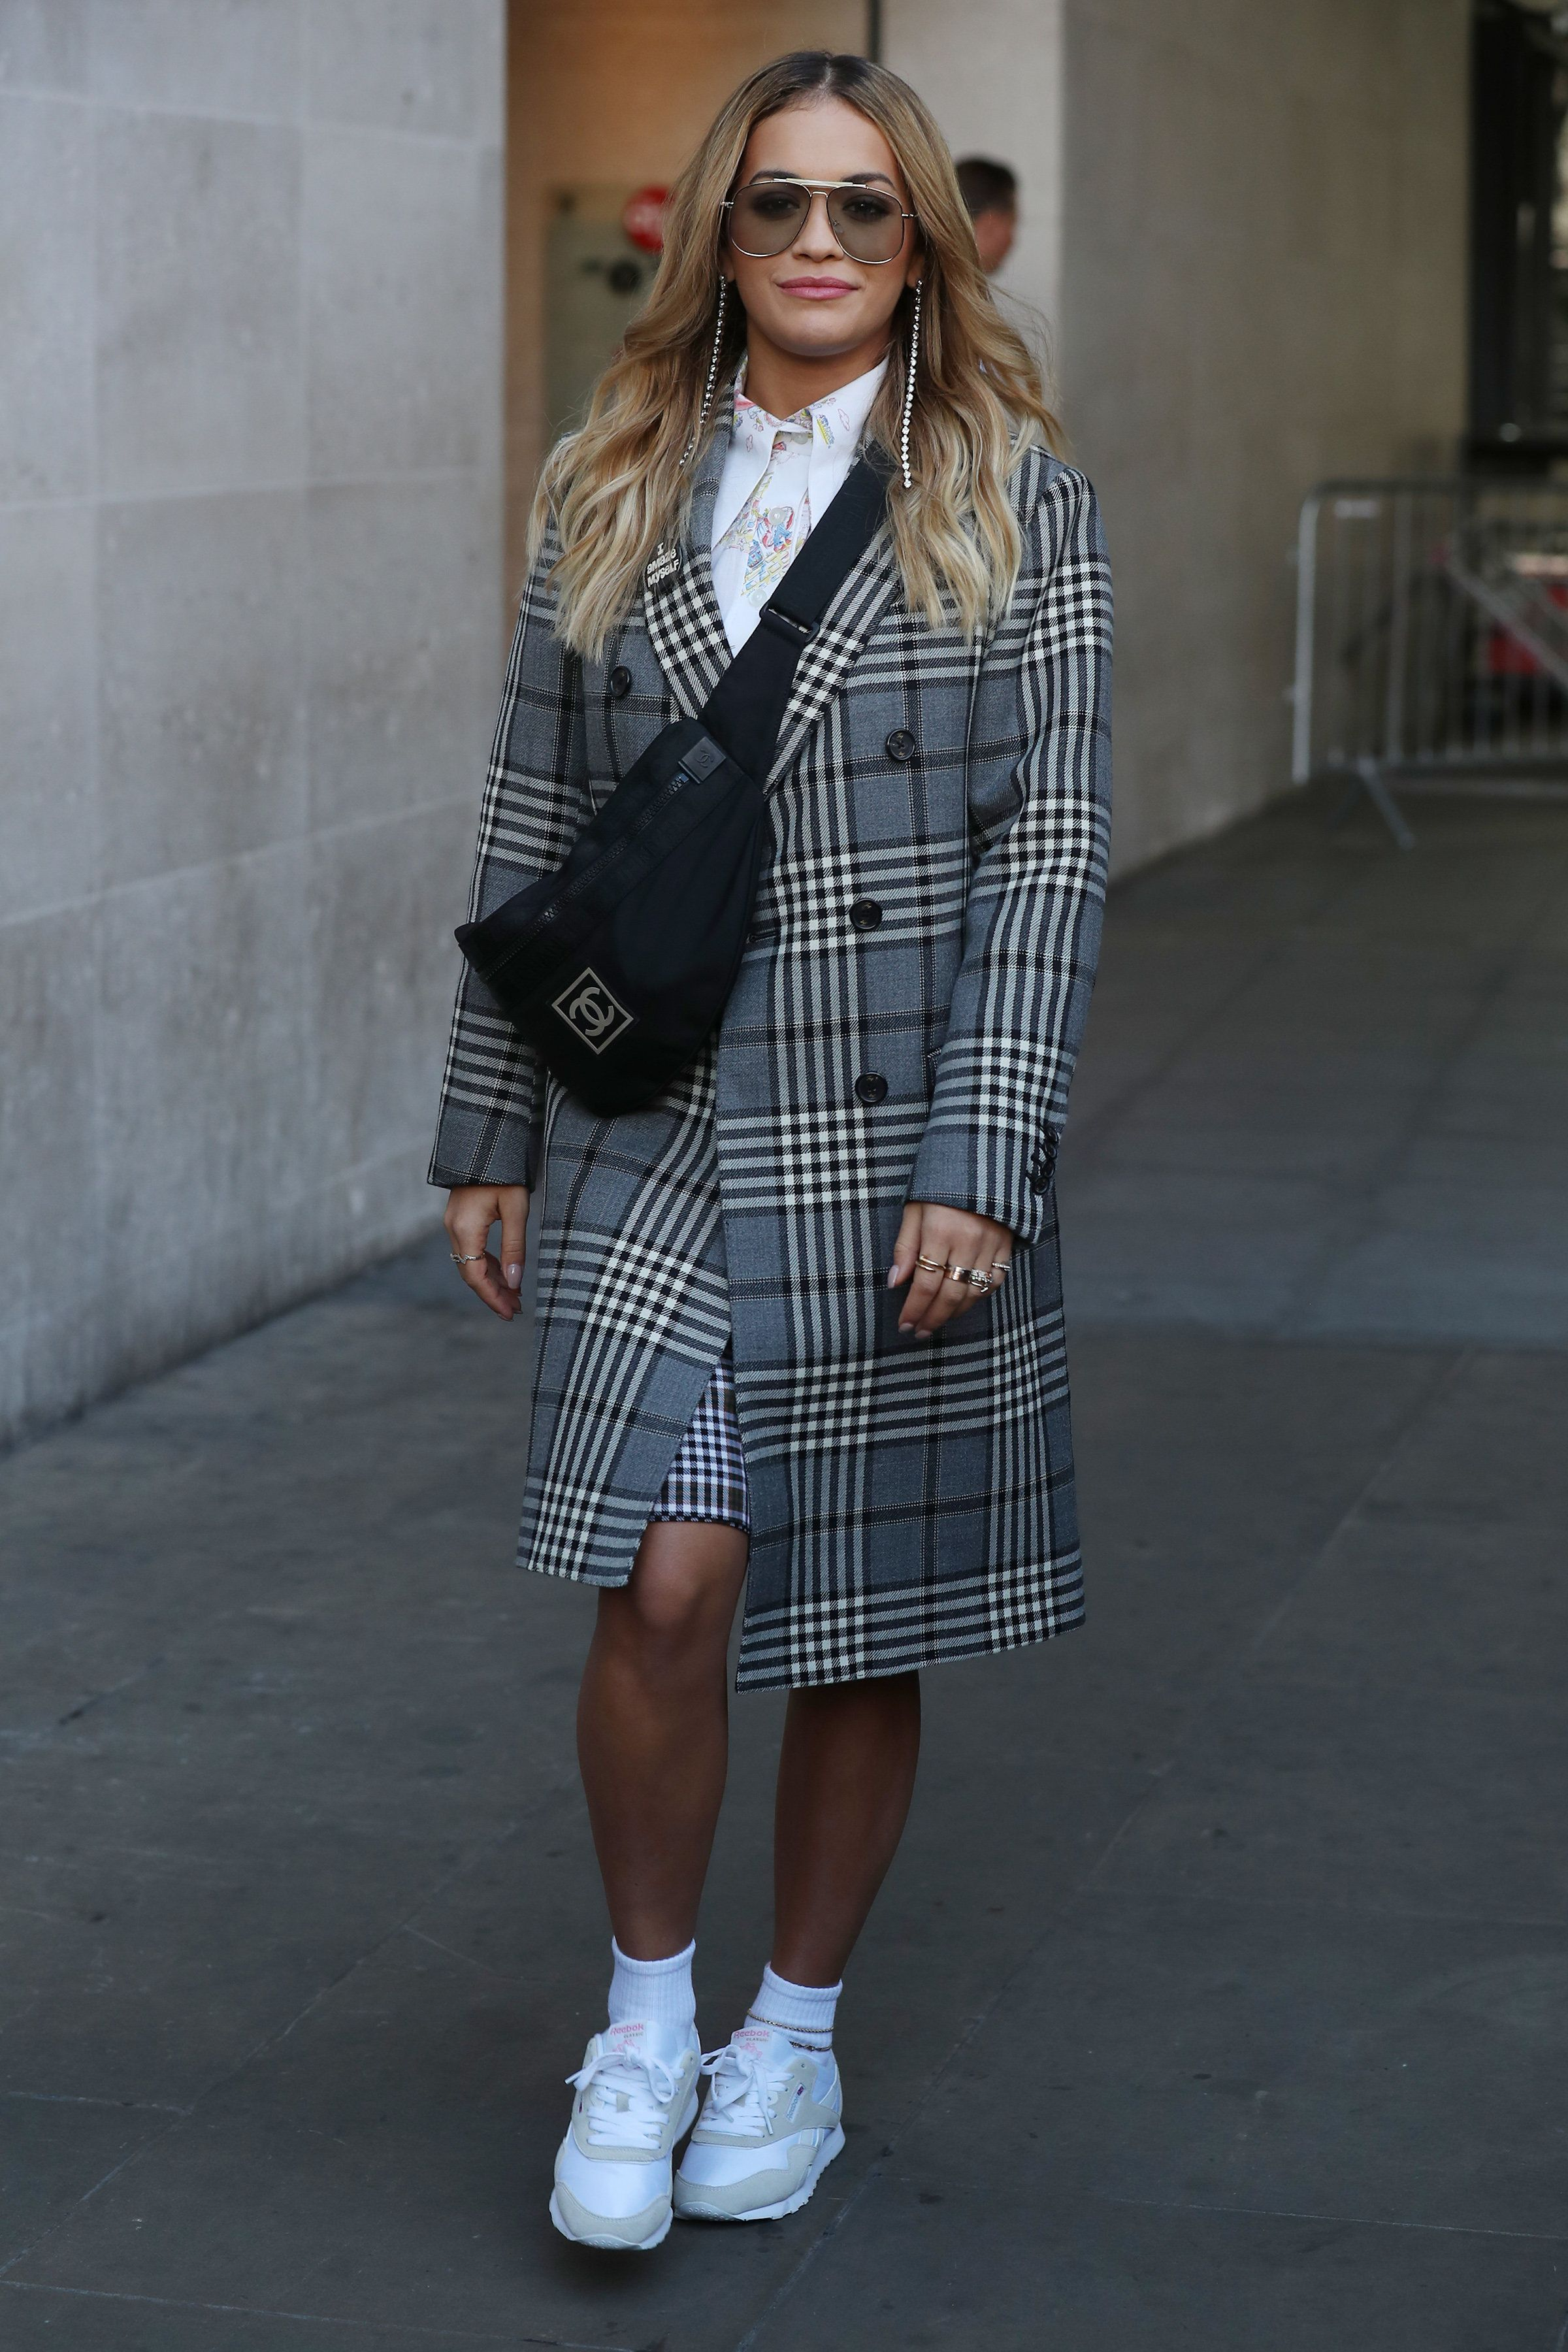 Rita Ora seen at BBC Radio One on Sept.18, 2017 in London, England.